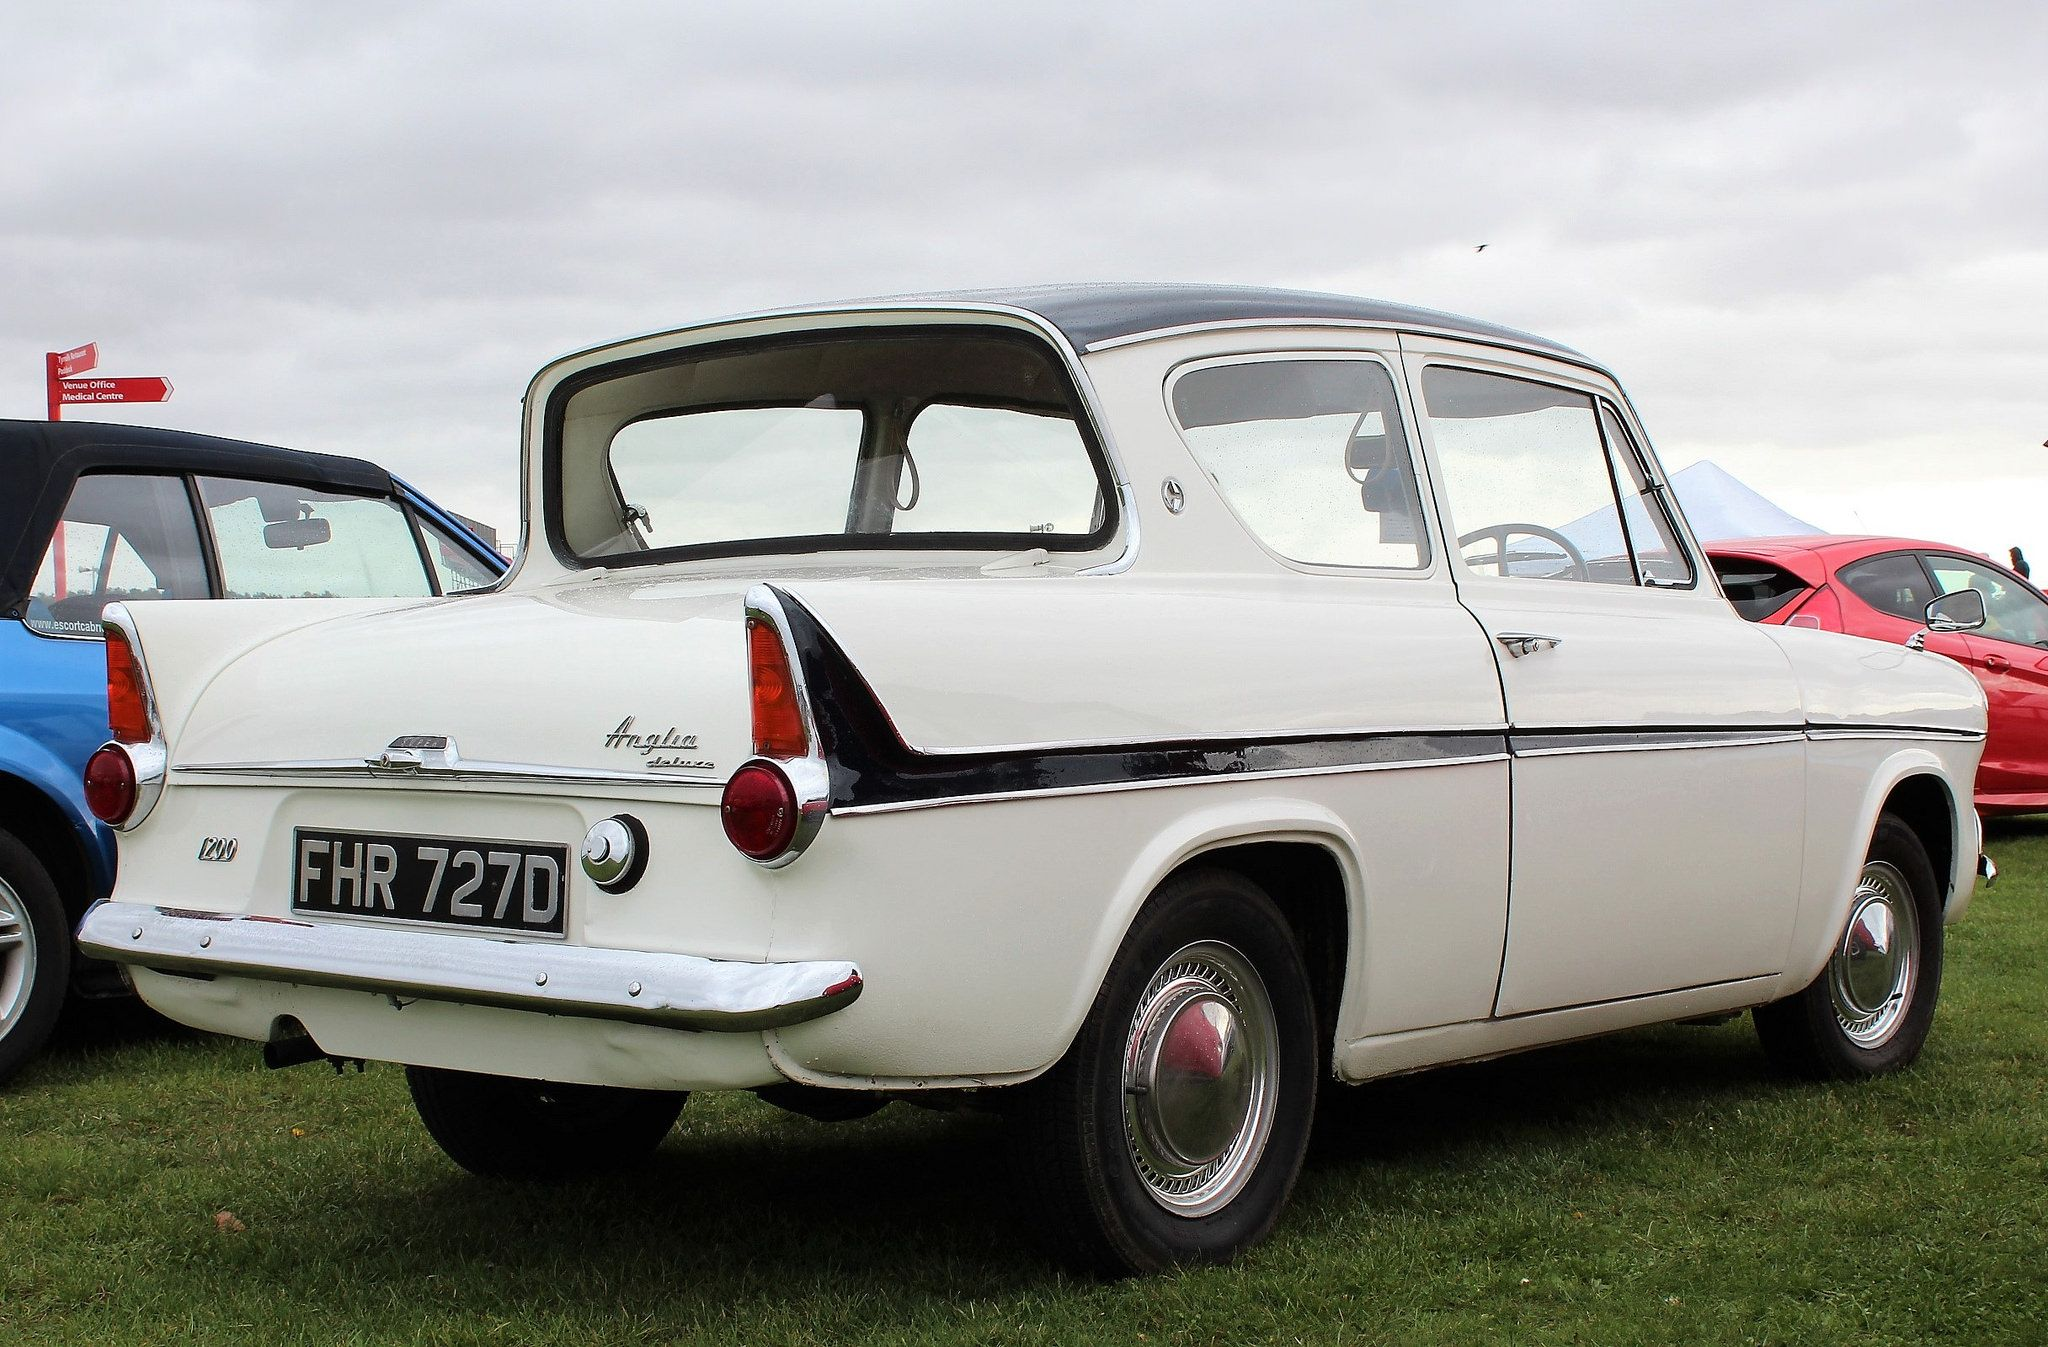 Fhr 727d 2 Ford Anglia Ford Classic Cars Car Ford